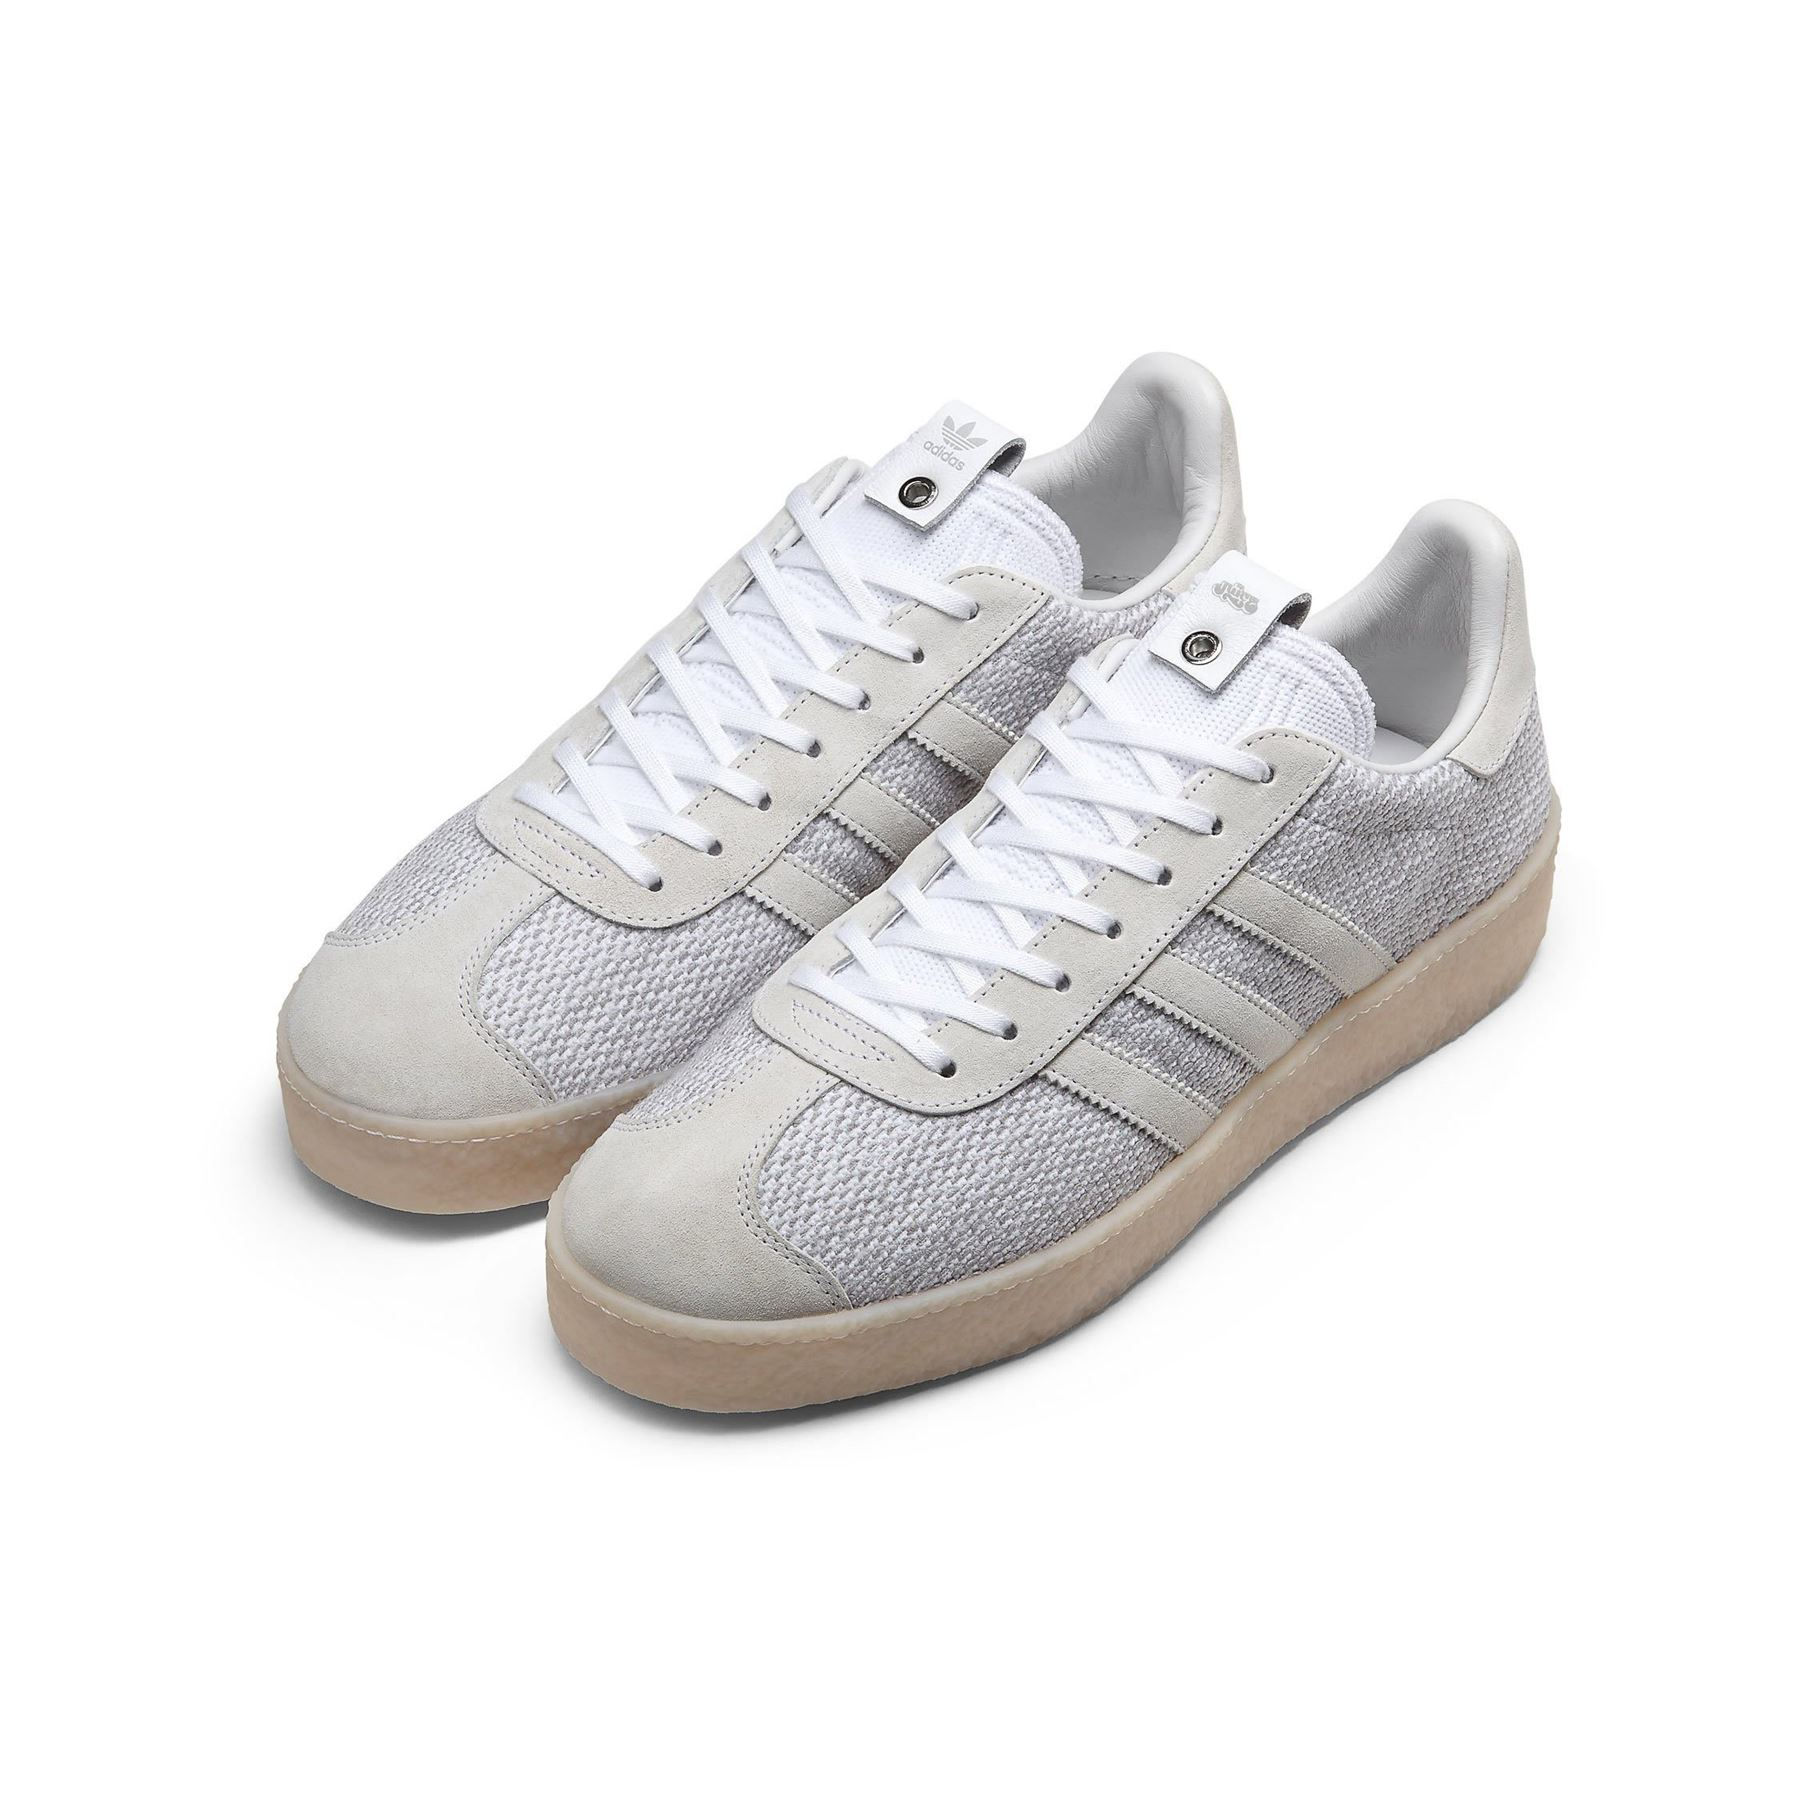 outlet store sale ae623 32808 Adidas ORIGINALS CONSORTIUM GAZELLE X jus formateurs baskets chaussures  unisexe